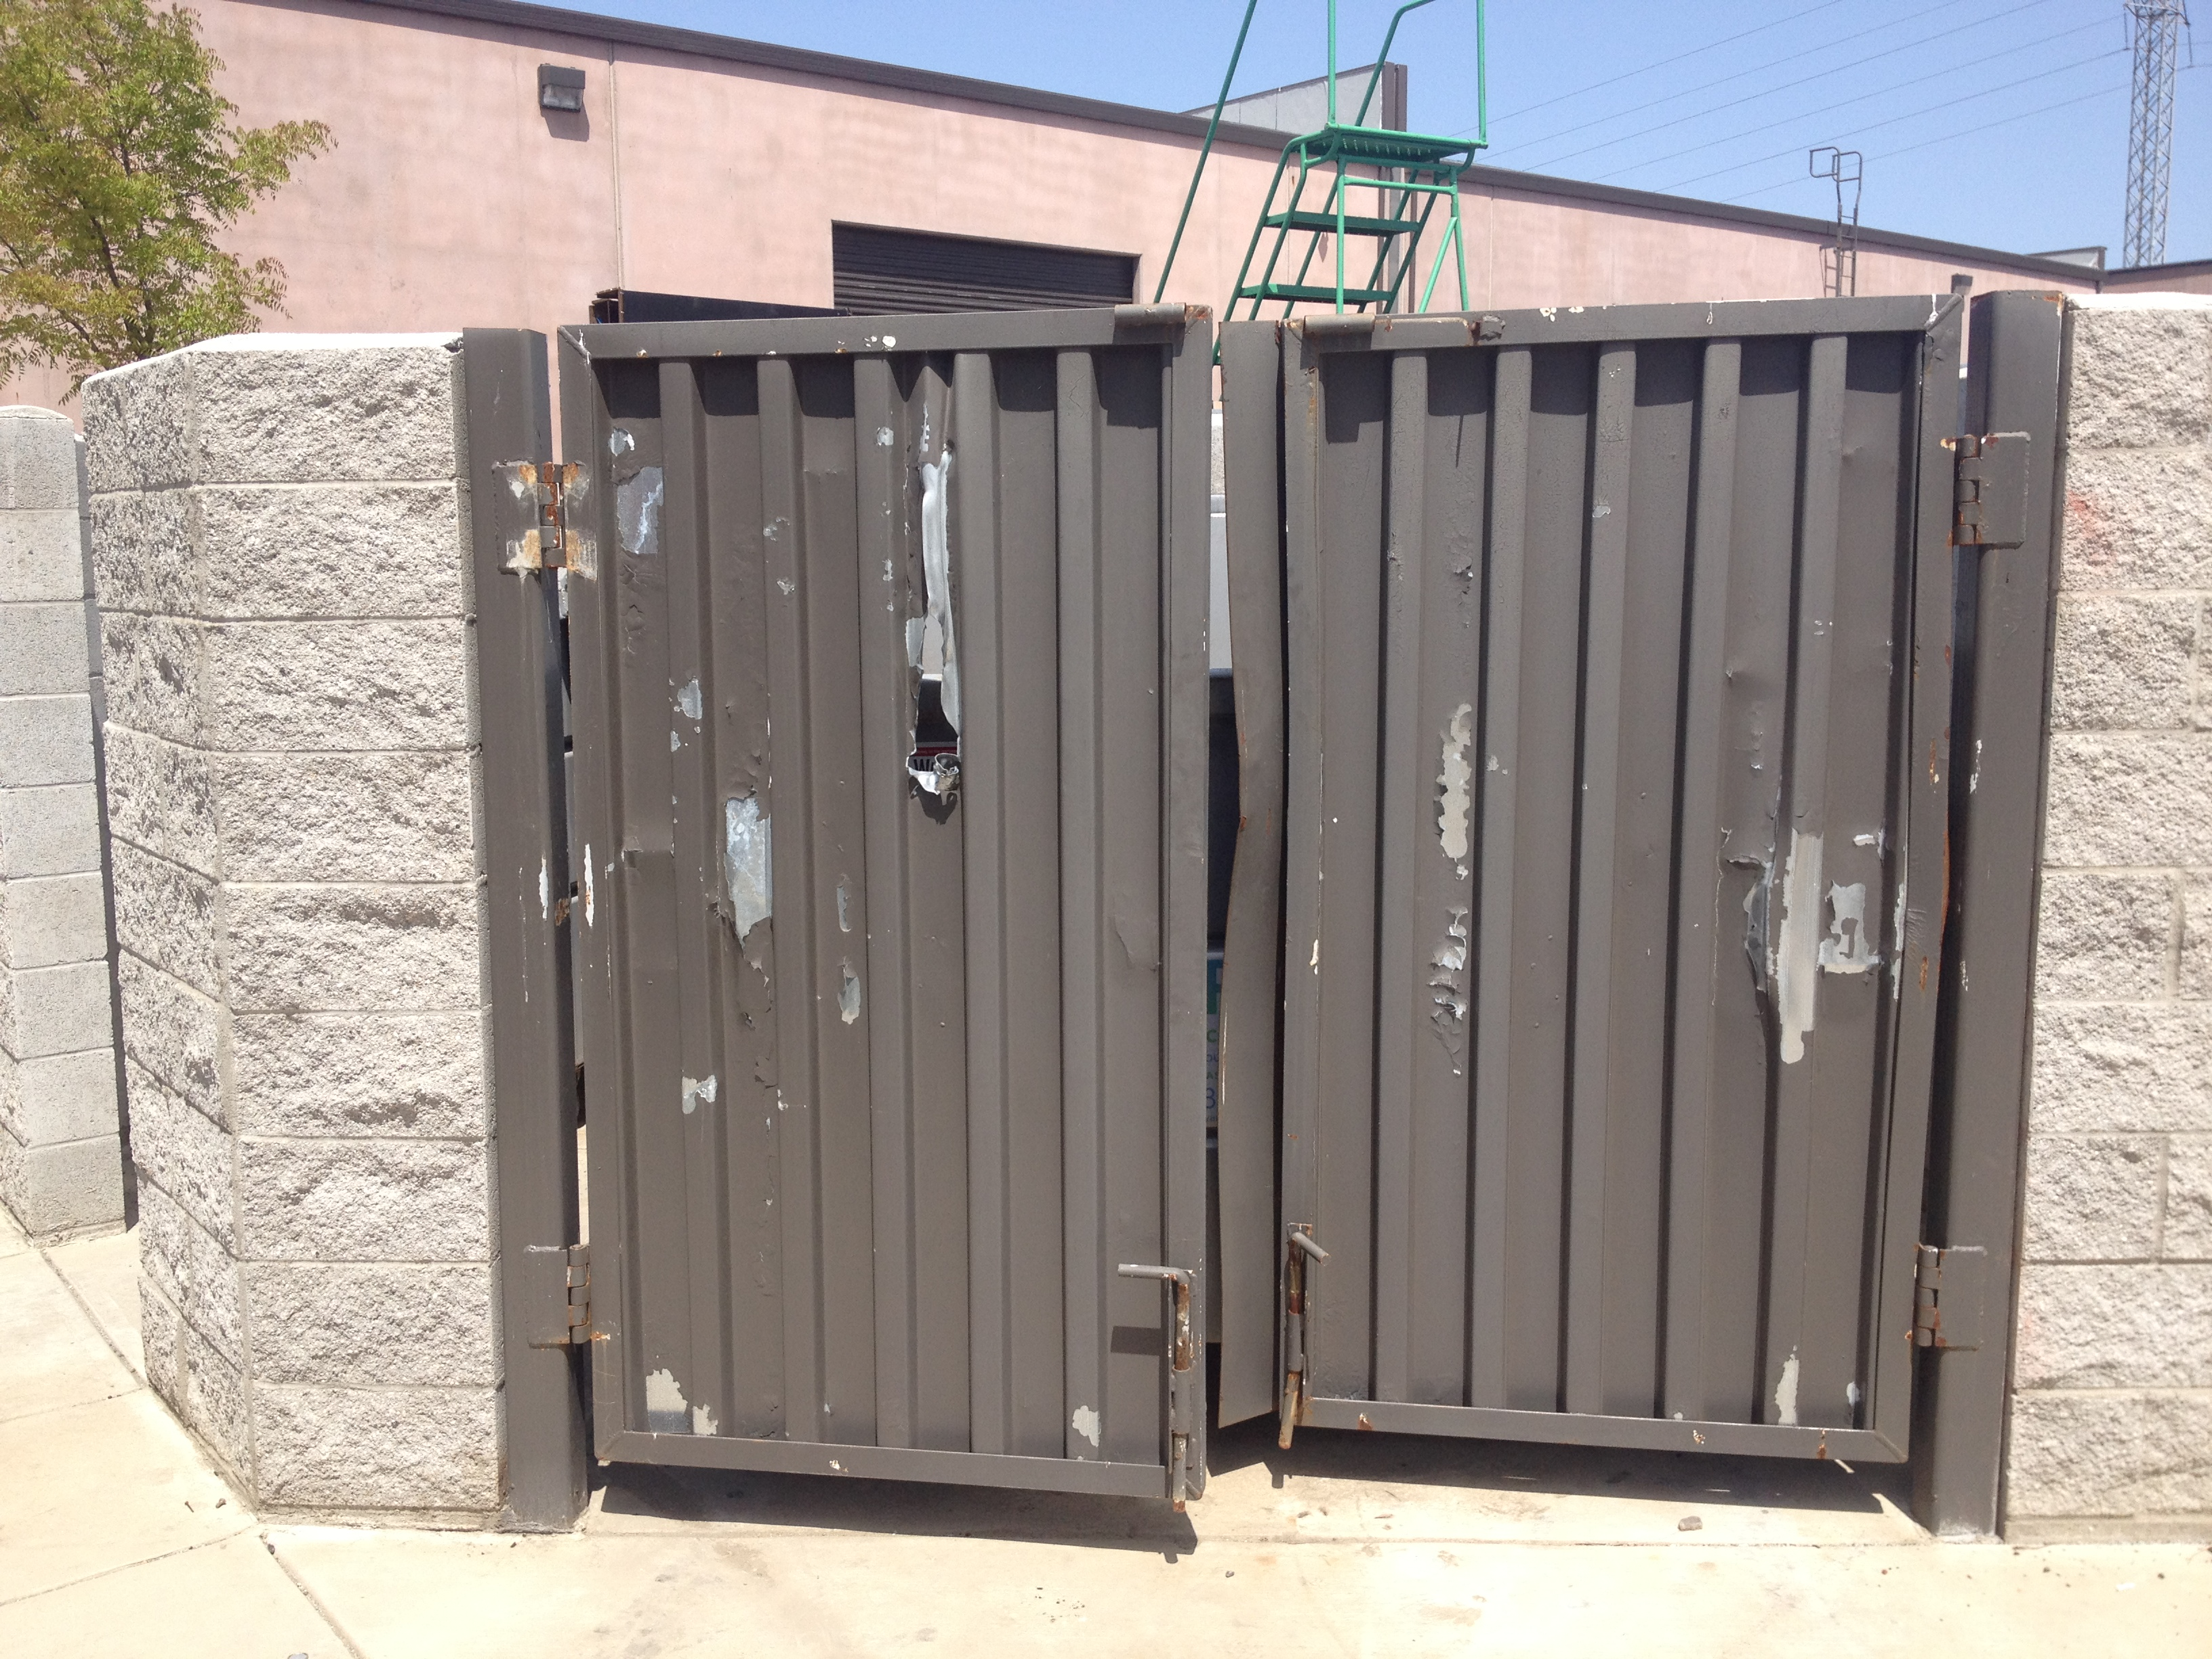 Trash Enclosure Gate Repair Eagle Welding Service